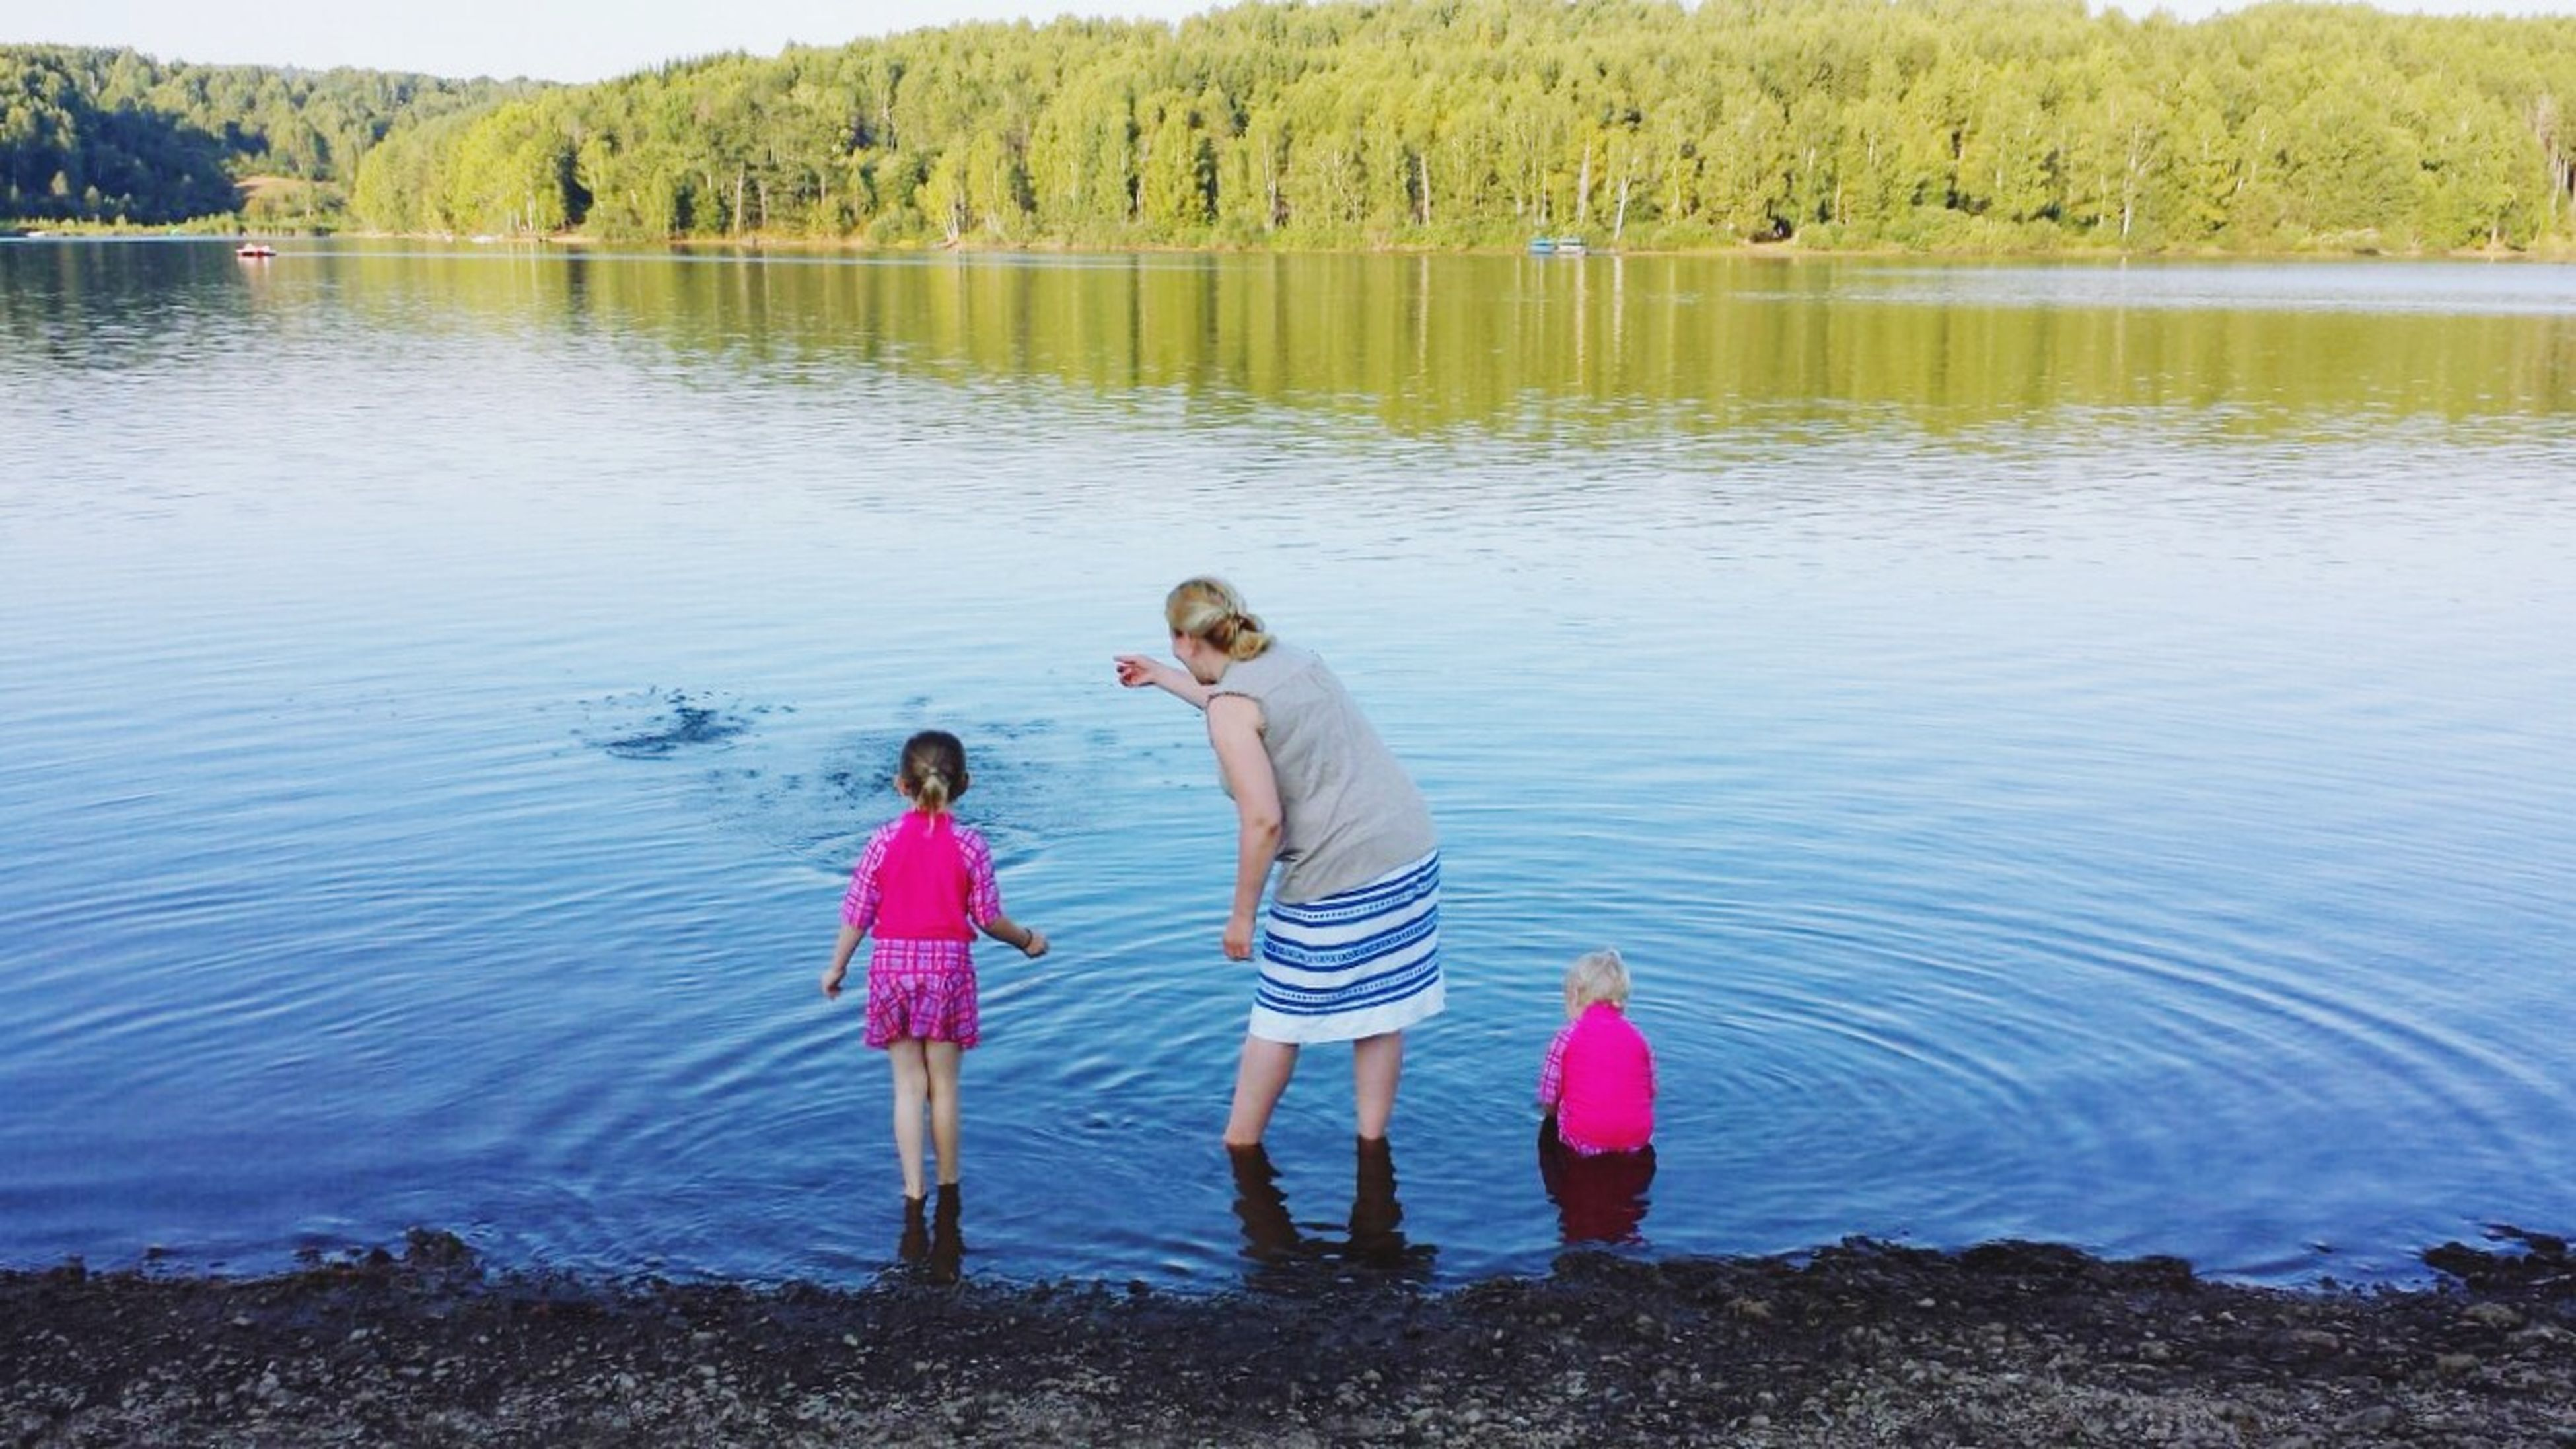 water, lake, lifestyles, leisure activity, full length, childhood, rear view, reflection, boys, togetherness, nature, standing, casual clothing, tranquility, girls, elementary age, day